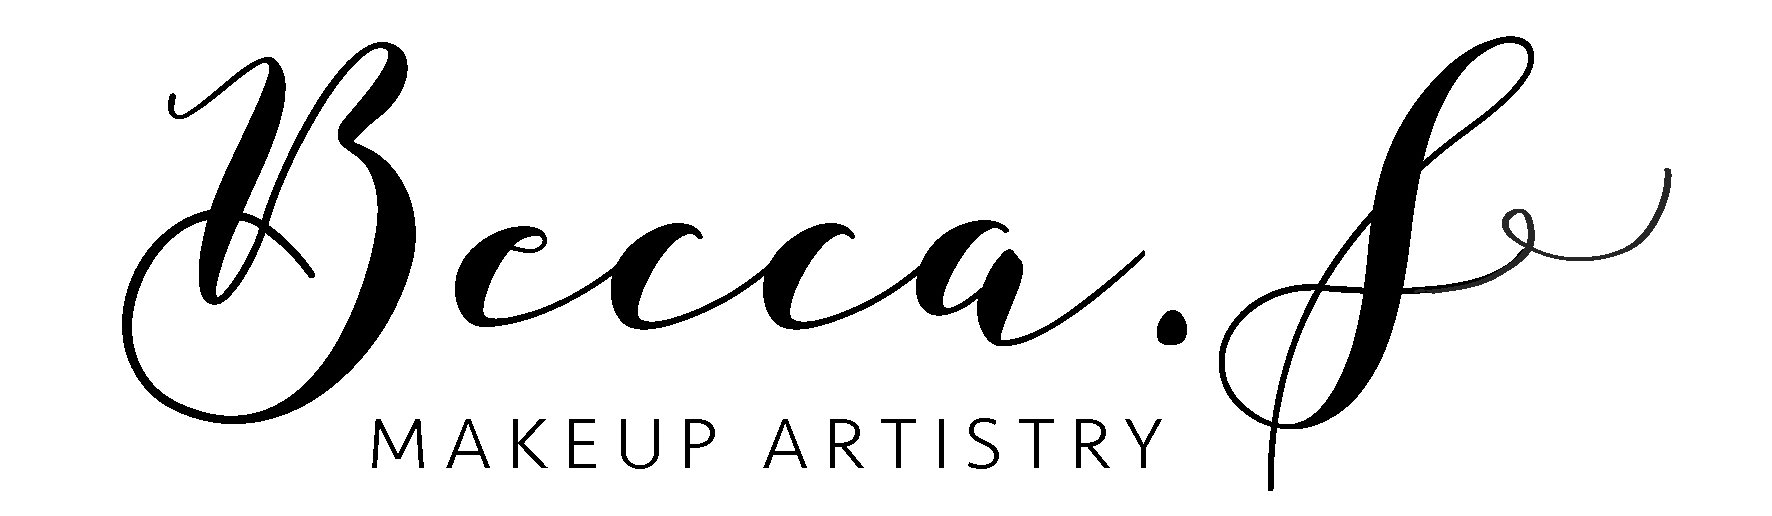 Becca S. Makeup Artistry Website